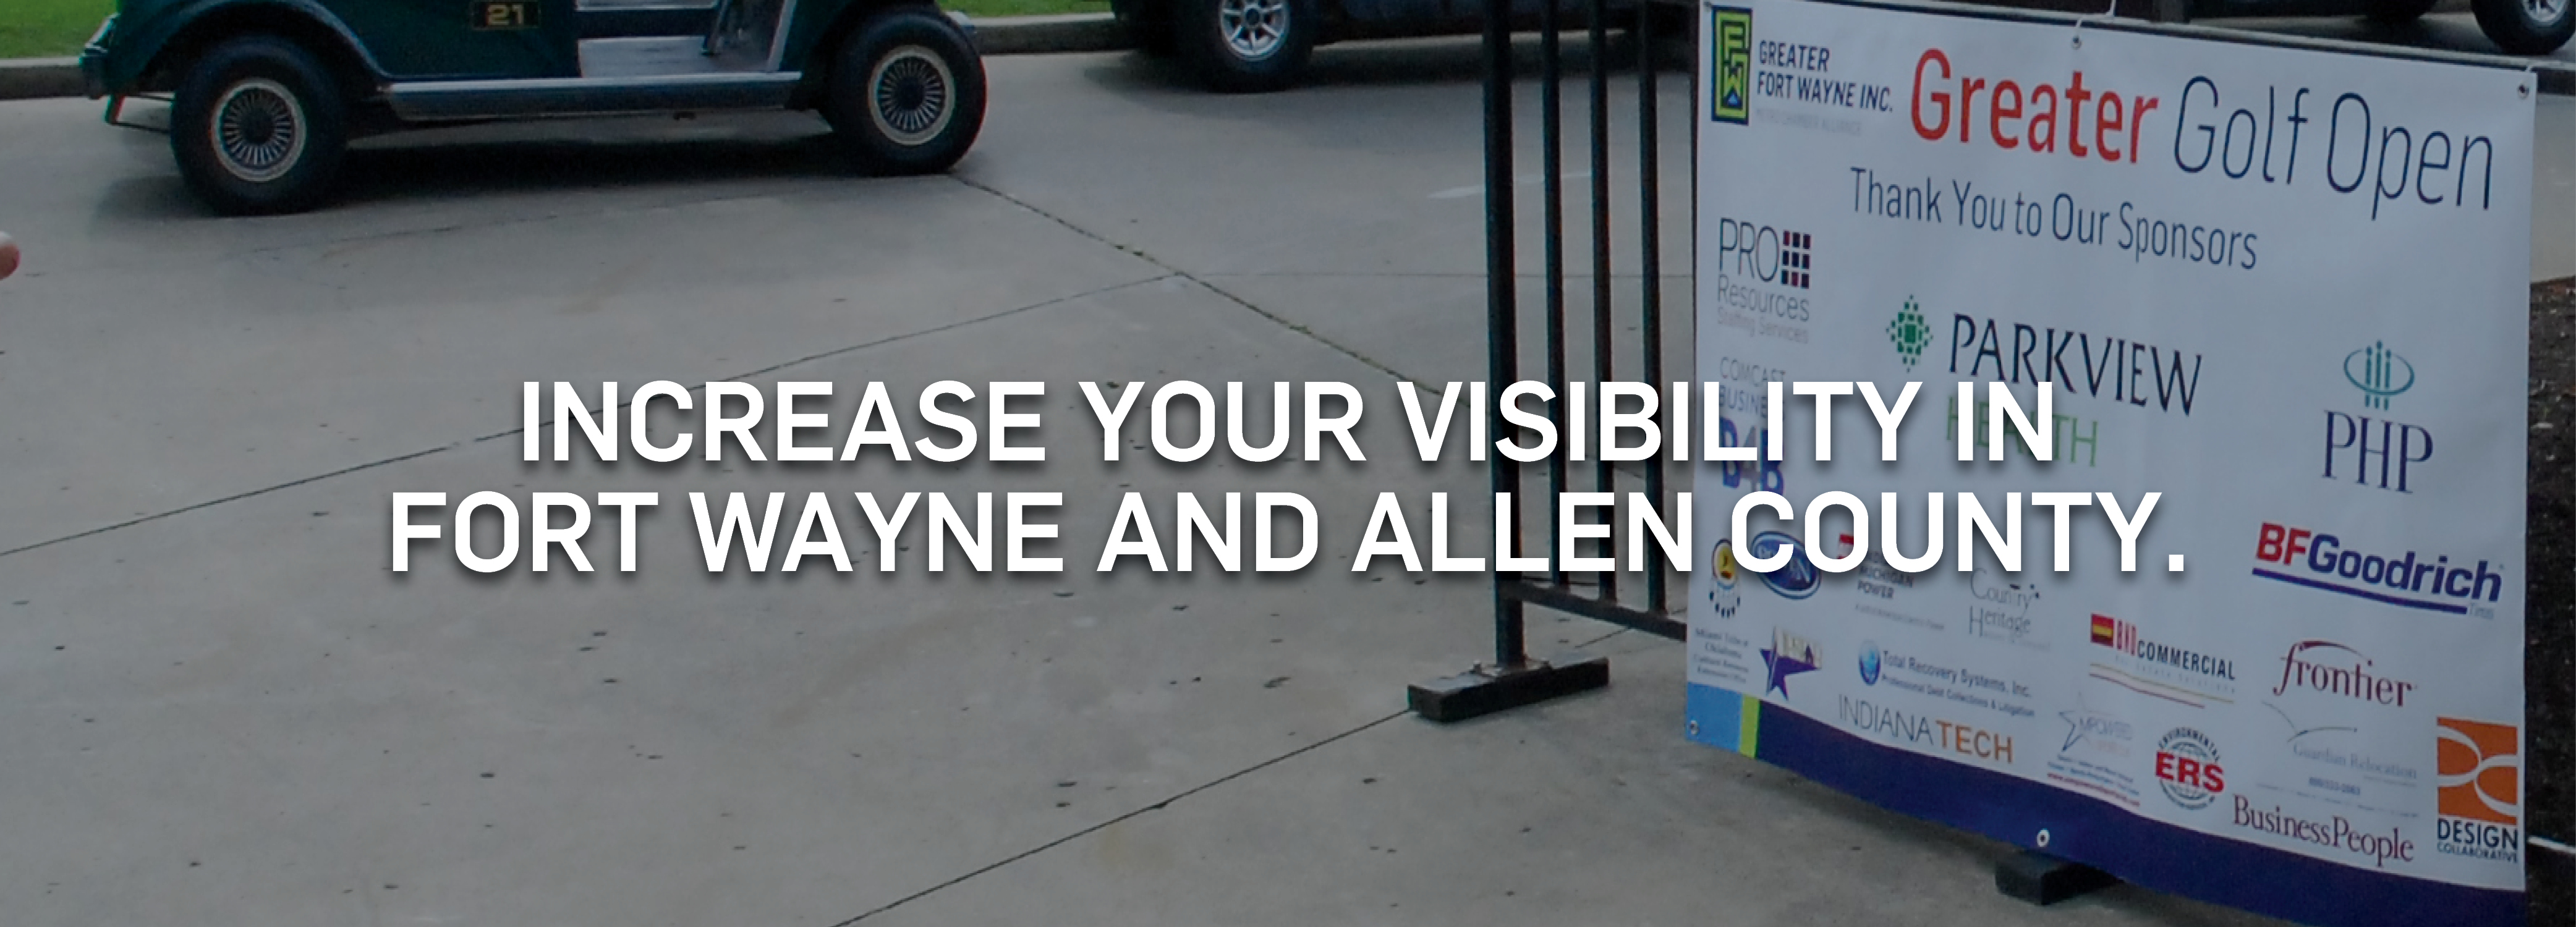 Increase your visibility in Fort Wayne and Allen County.